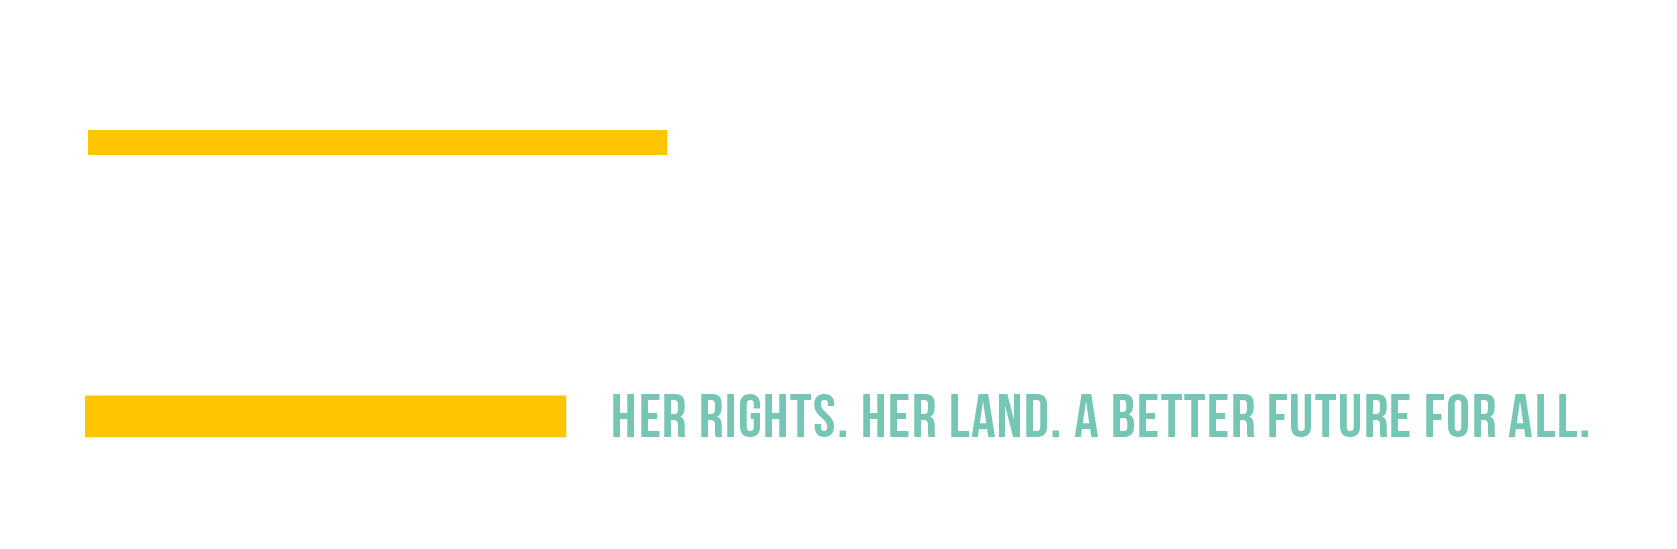 Stand for Her Land Campaign